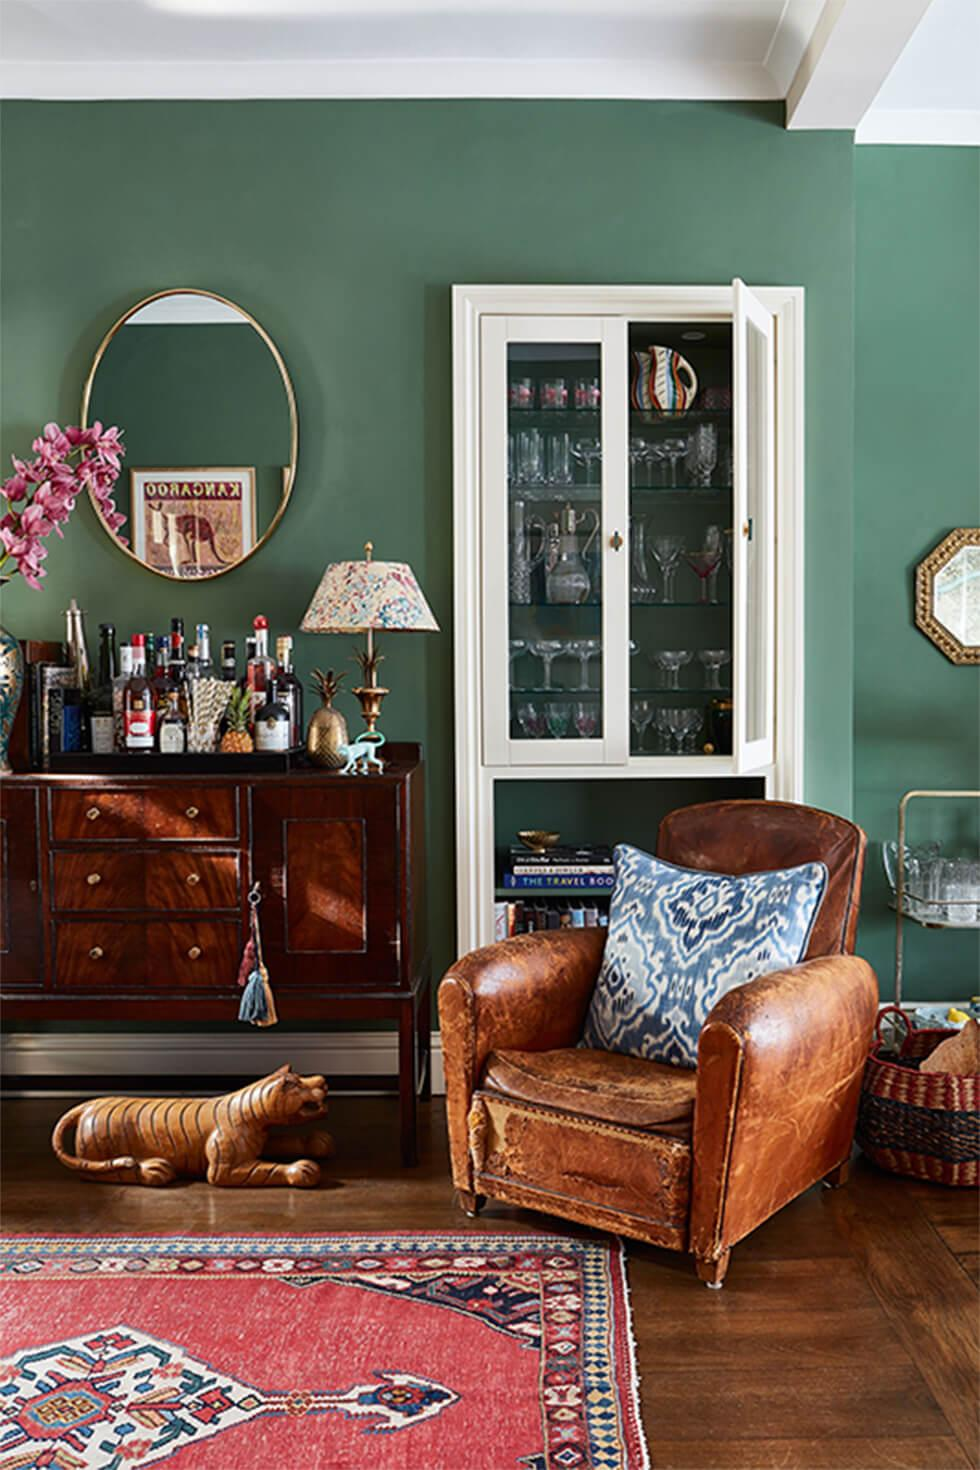 Classic olive green living room with warm brown leather armchair, dark wood chest of drawers and a printed rug